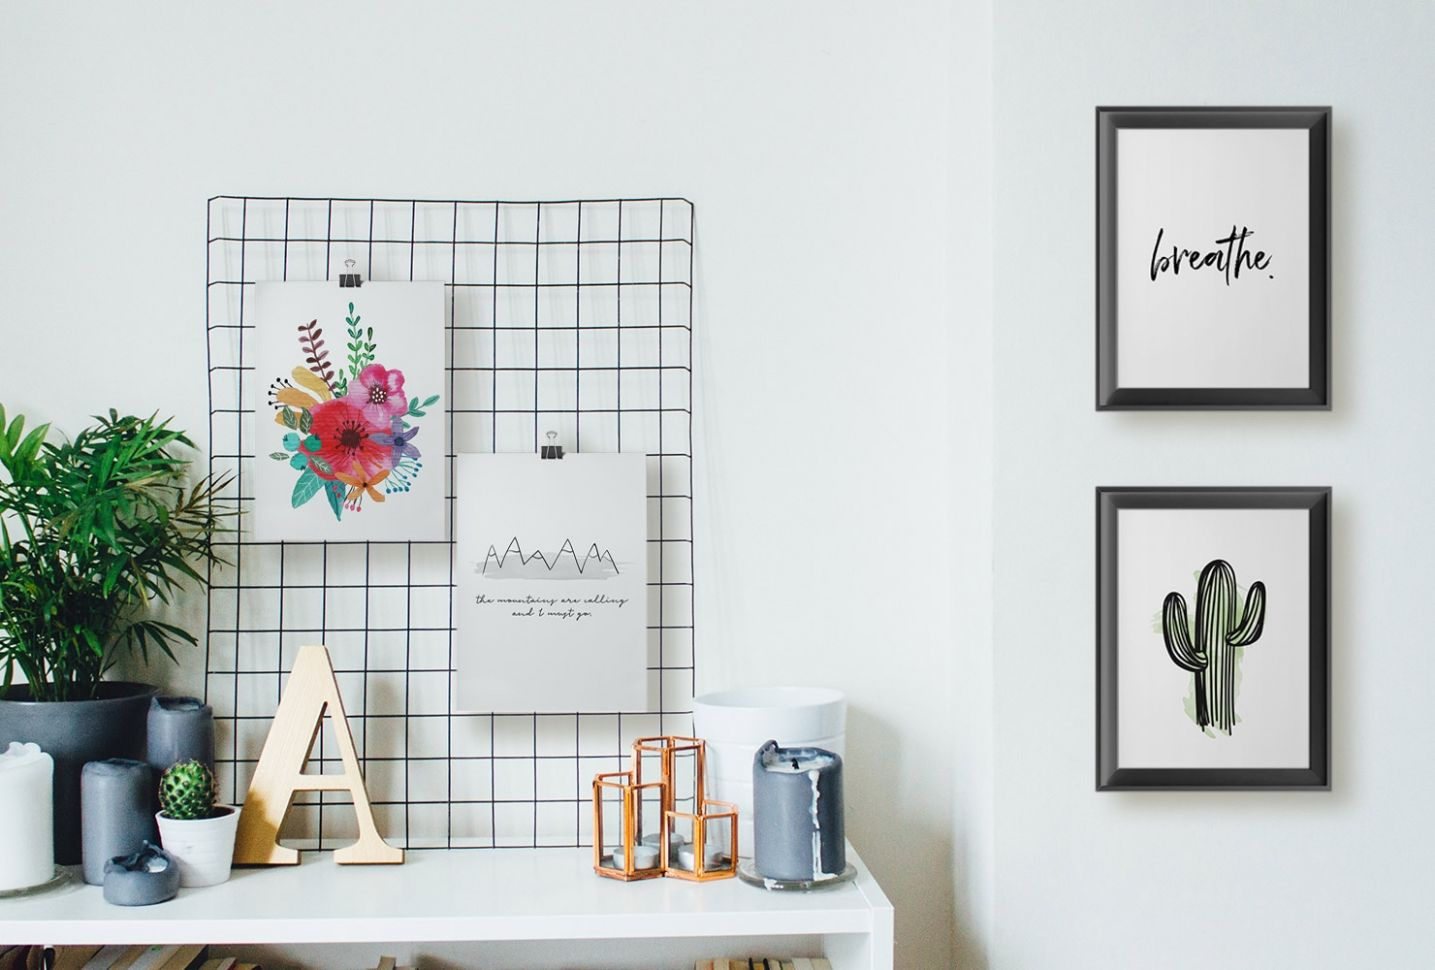 10 Unique DIY Wall Art Ideas (With Printables) | Shutterfly - wall decor ideas homemade